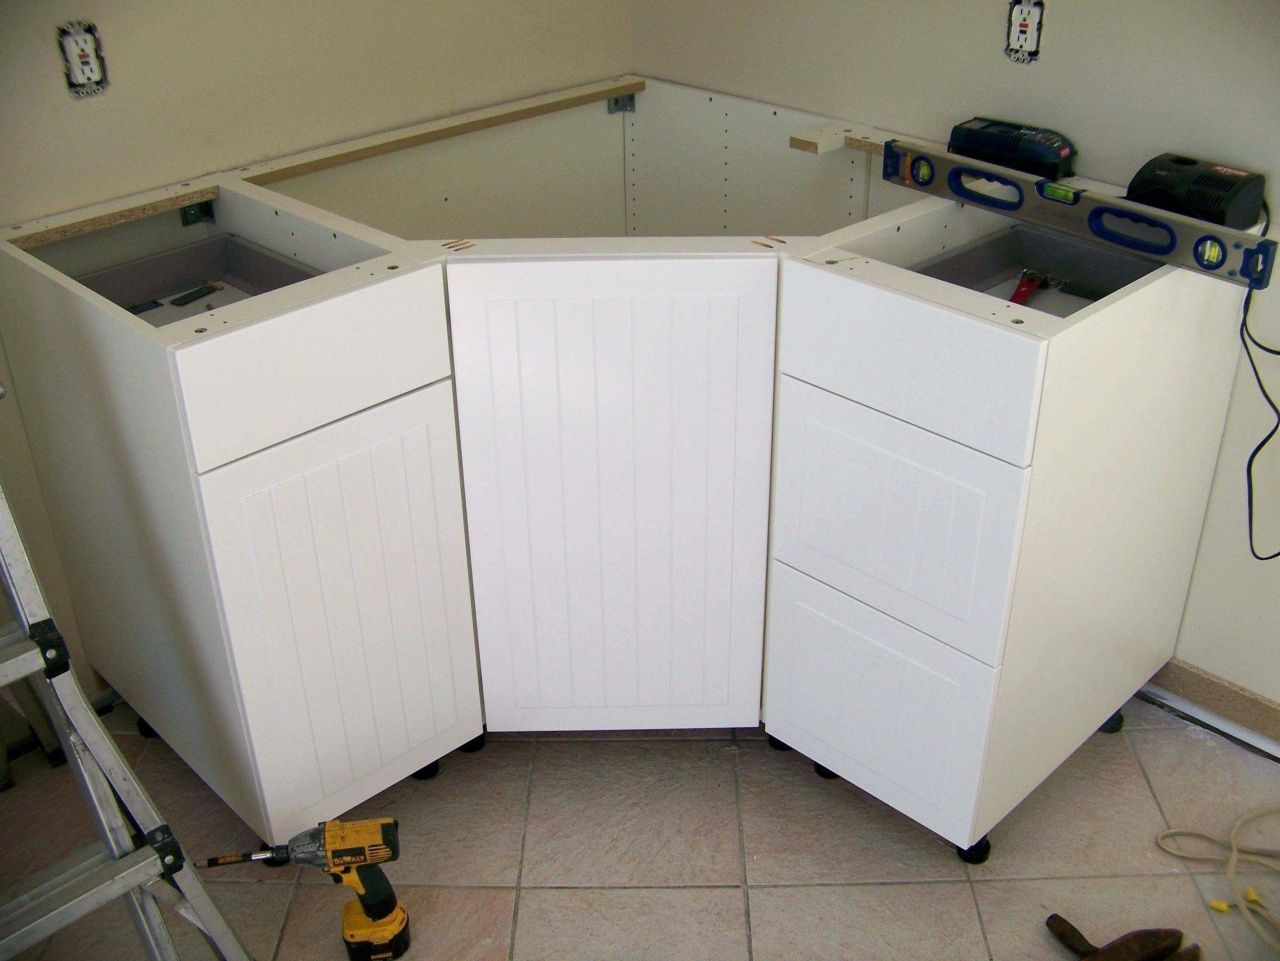 Kitchen Sink Size For 30 Inch Cabinet Corner Sink Kitchen Corner Kitchen Cabinet Kitchen Sink Sizes